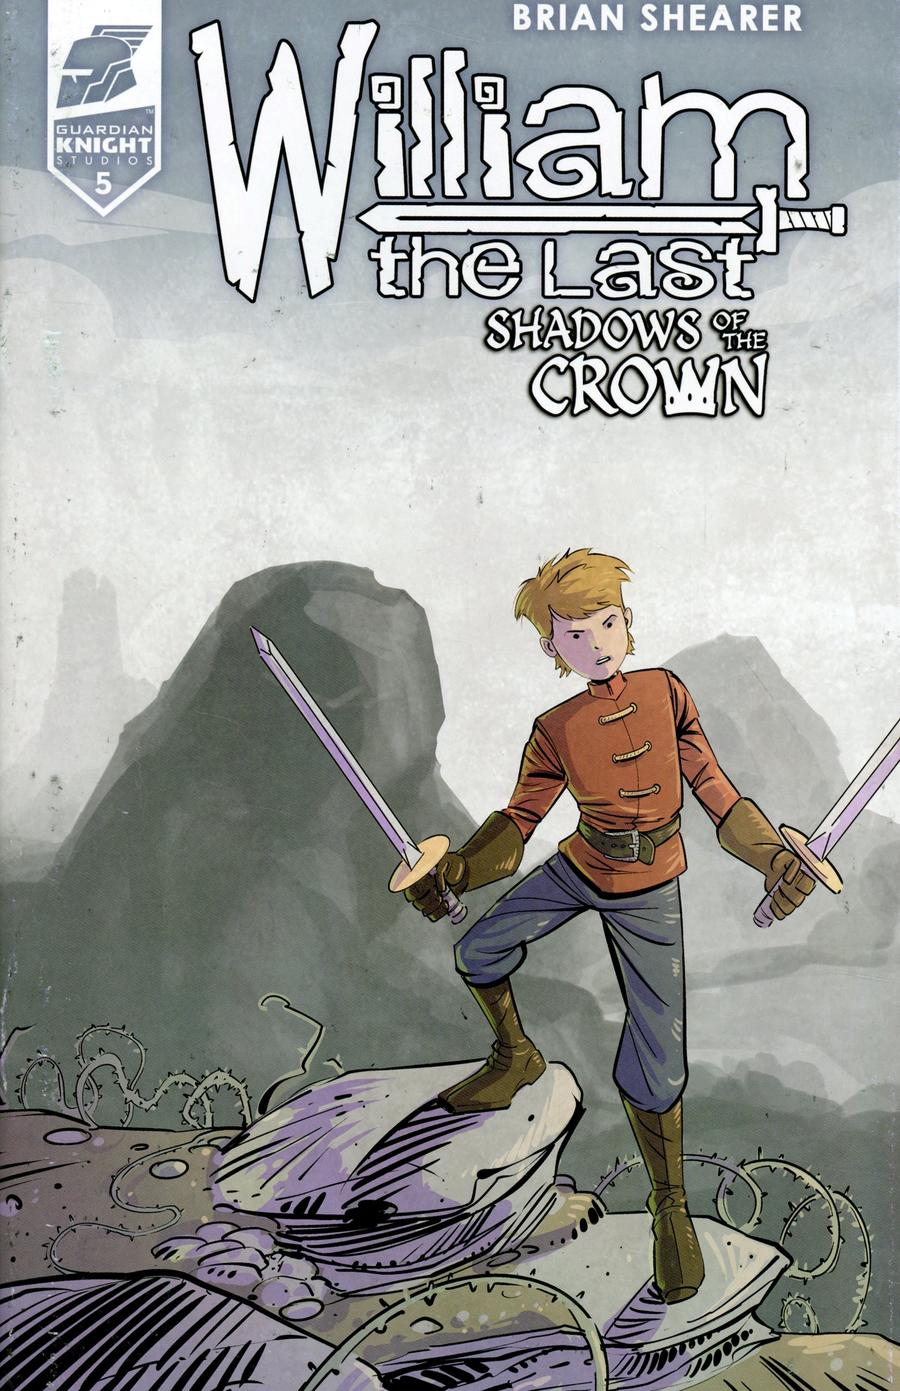 William The Last Shadows Of The Crown #5